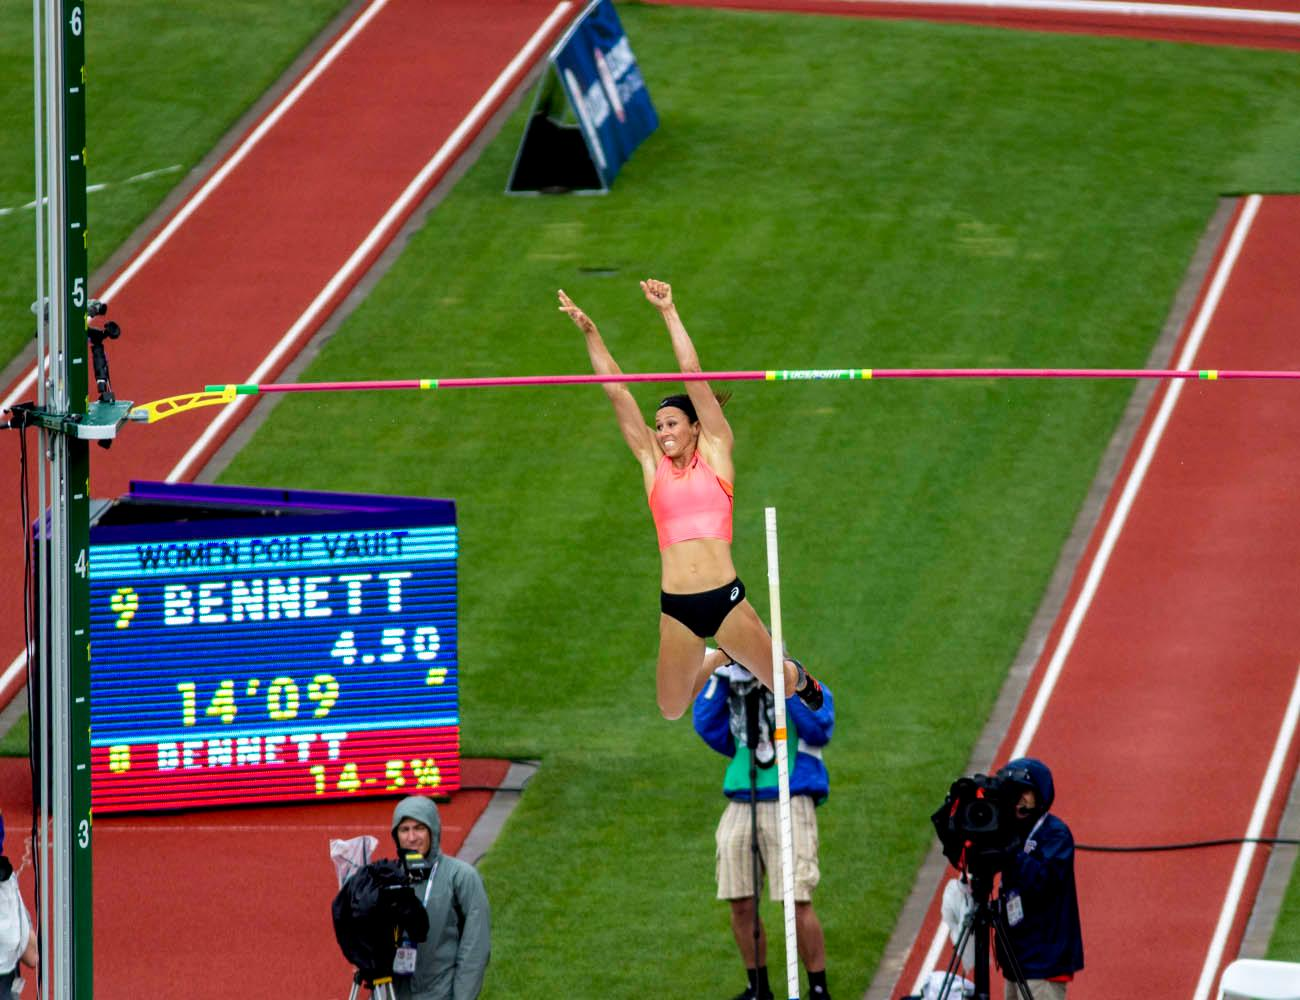 ASICS� April Bennett smiles after clearing the bar in the Women�s Pole Vault. Bennett finished 10th after clearing 4.50m. Day 10 of the U.S. Track and Field Trials concluded Sunday at Hayward Field in Eugene, Ore. The competition lasted July 1 through July 10. Photo by Amanda Butt